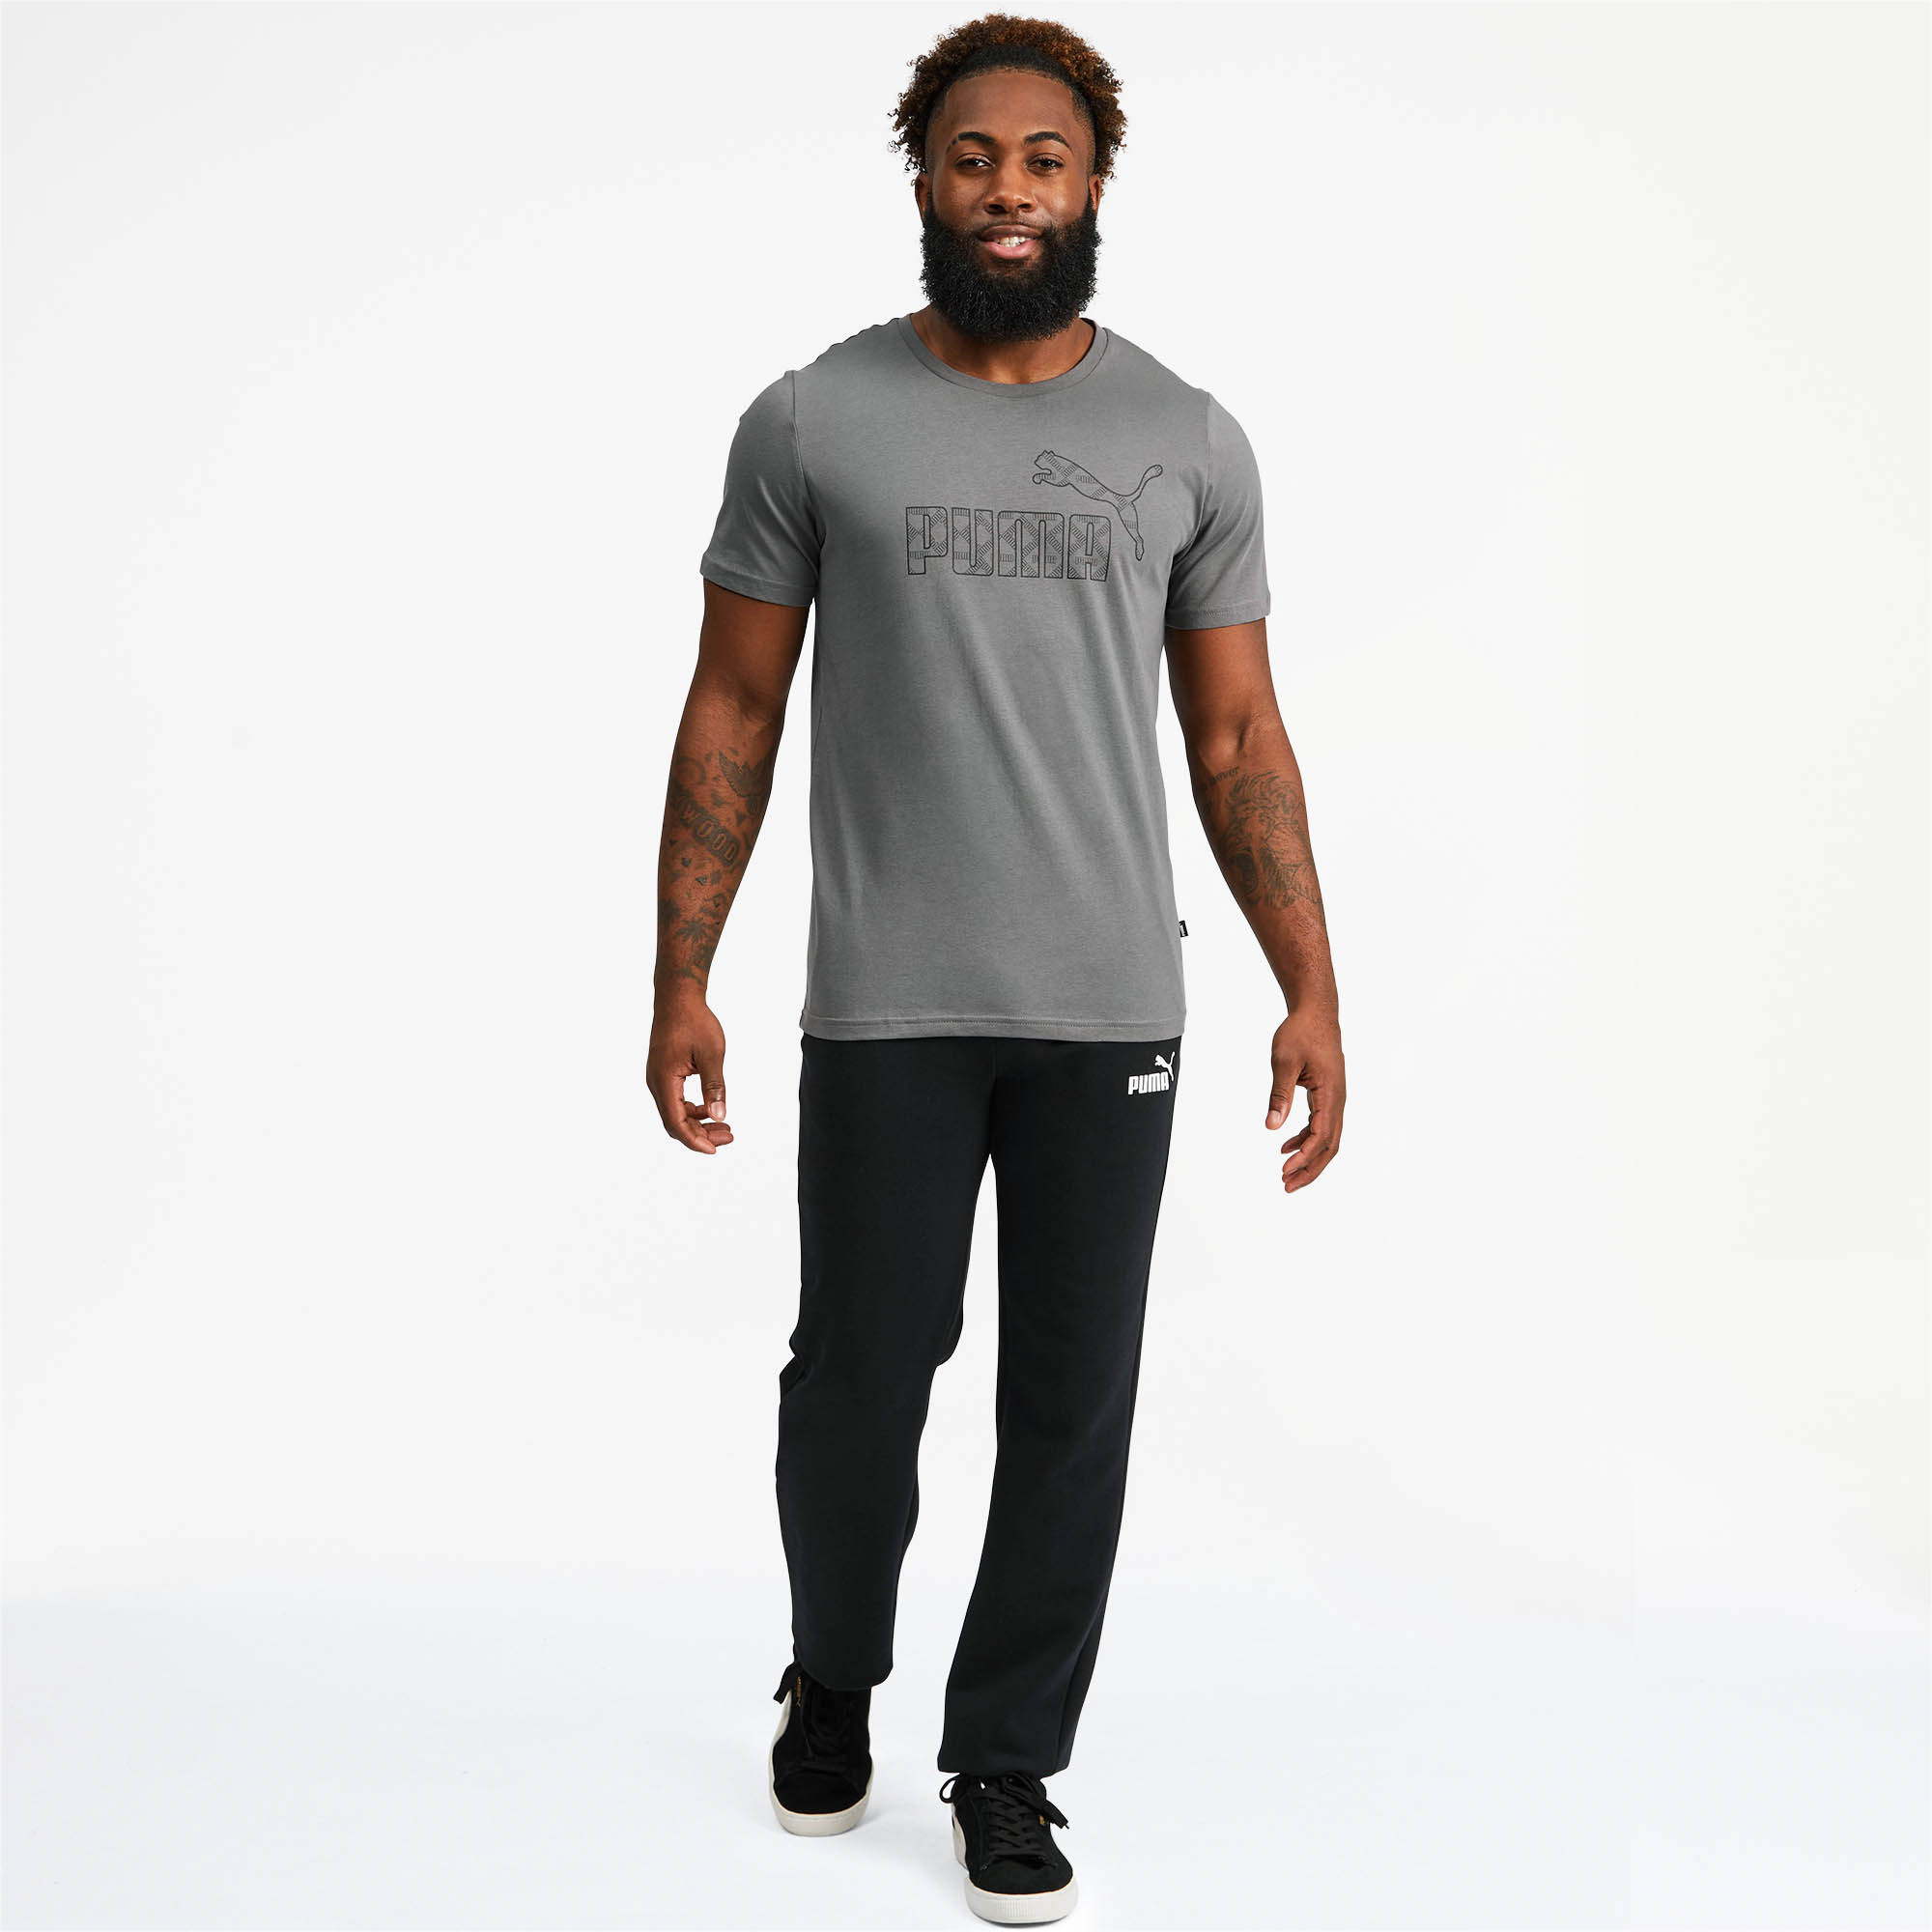 PUMA-Logo-AOP-Pack-Men-039-s-Graphic-Tee-Men-Tee-Basics thumbnail 16